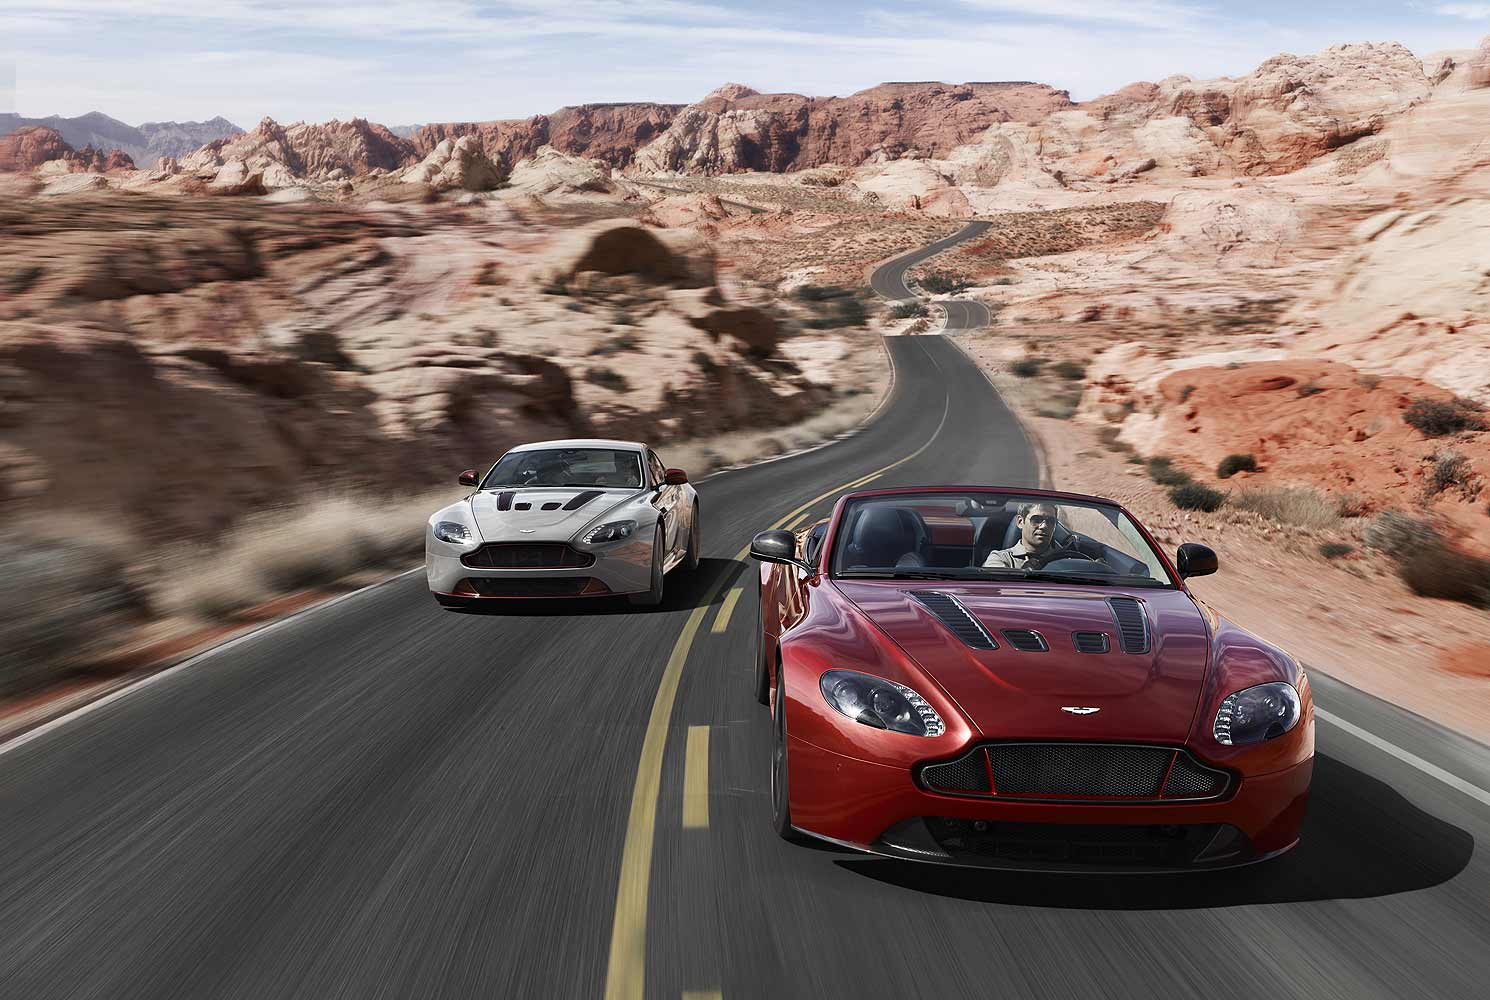 2018 Aston Martin V12 Vantage Roadster photo - 2